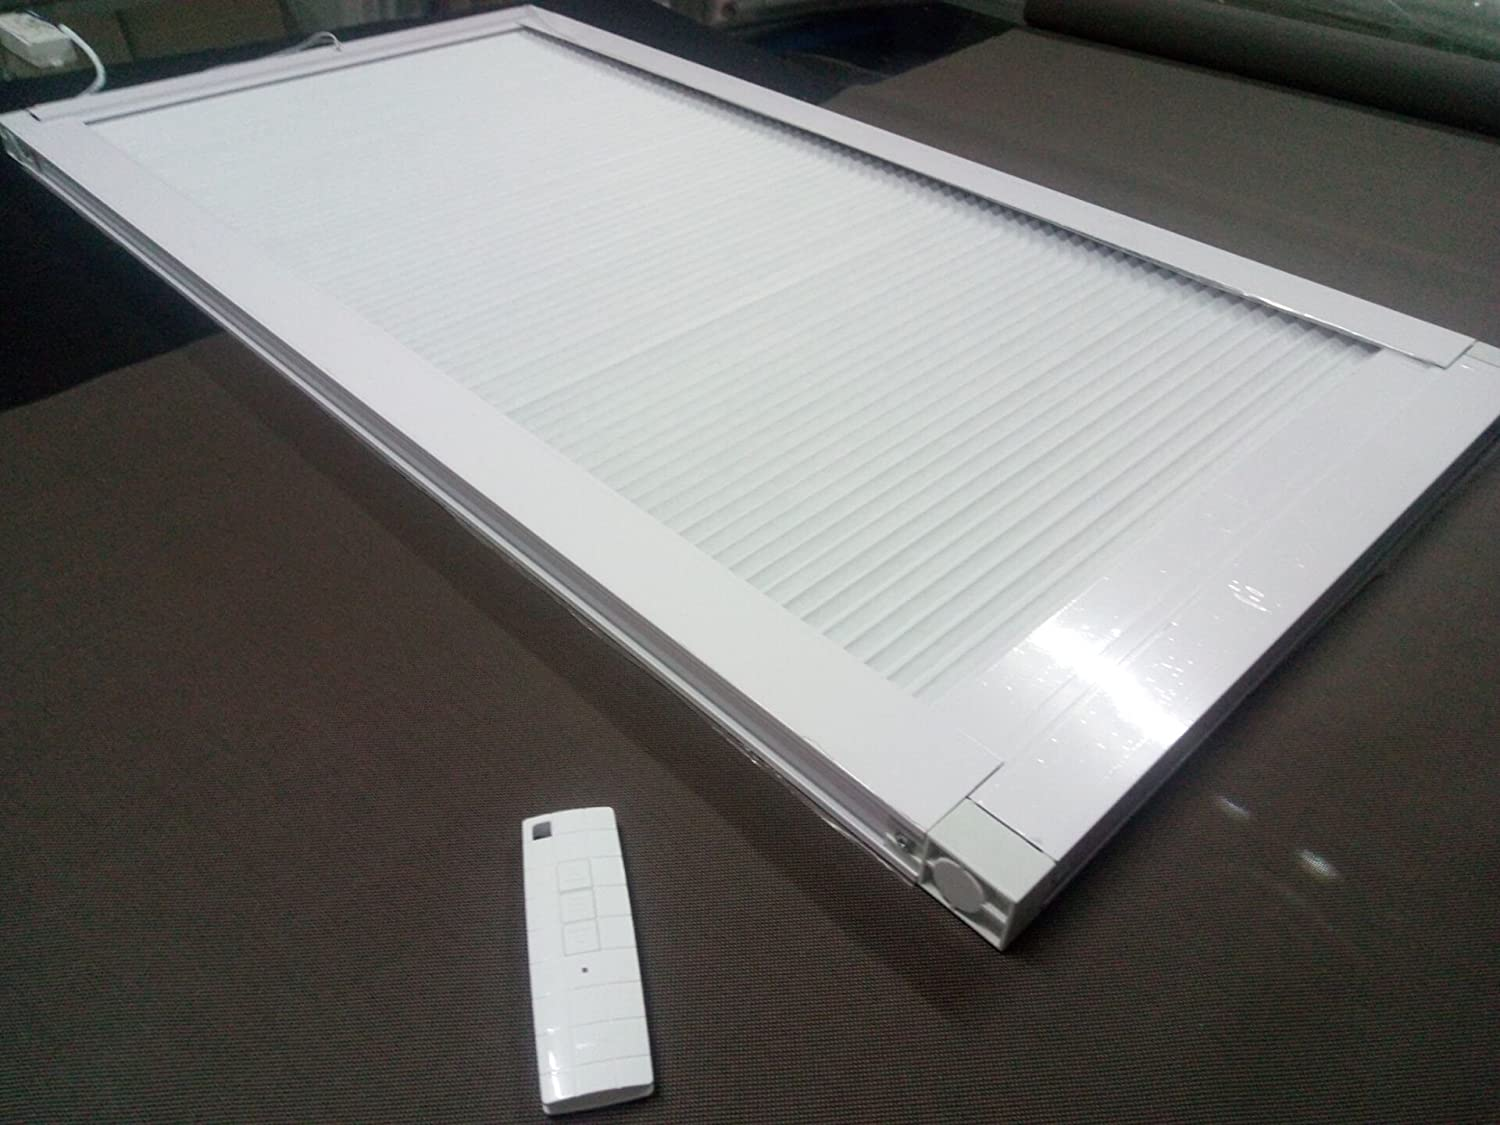 Motorized Skylight Roof Window Cellular Honeycomb Blackout Blinds Curtain,Website Price=(1pc,Motorized Control,Size:39